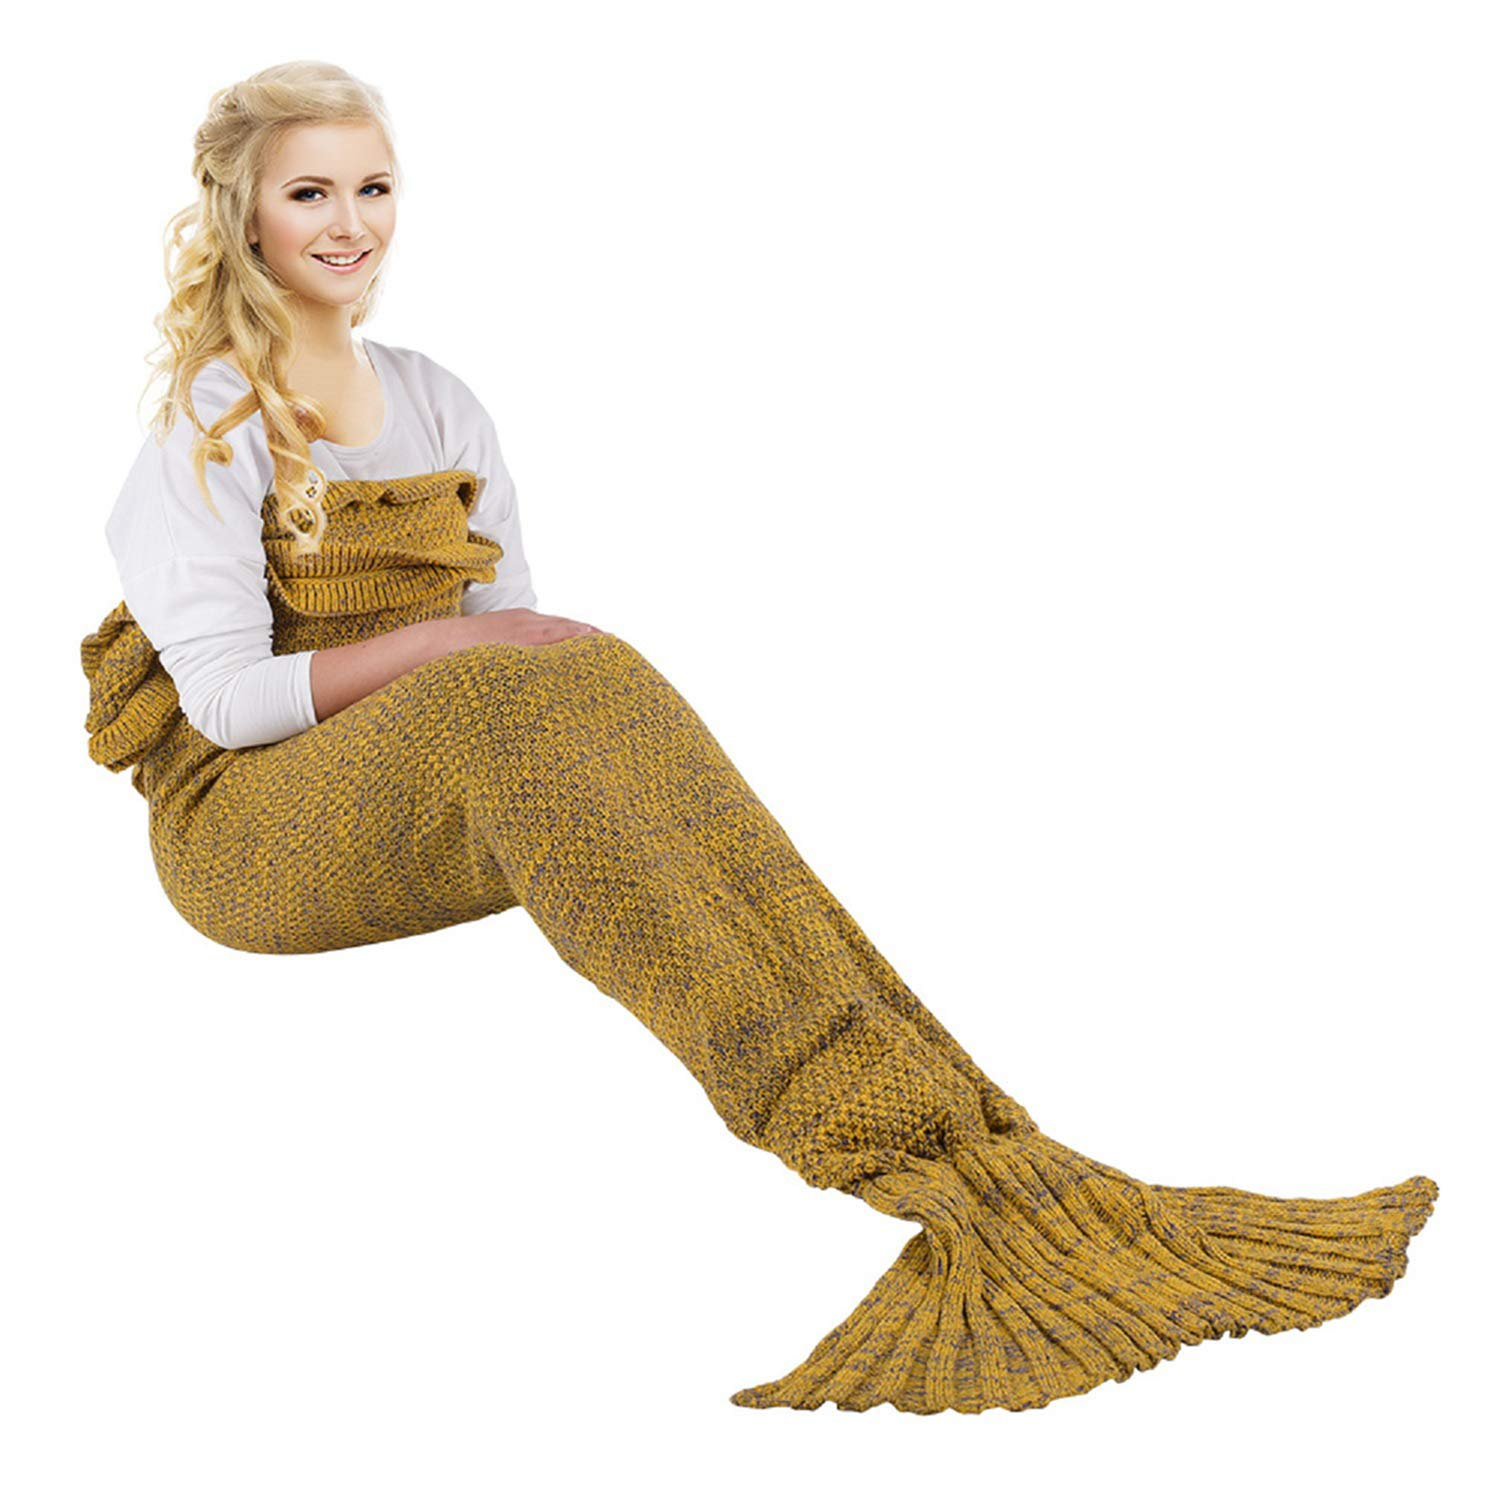 iBaby888 Wearable Mermaid Tail Blanket Crochet, All Seasons Warm Knitted Bed Blanket Sofa Quilt Living Room Sleeping Bag for Adults, Classic Pattern with Lace, 70.9'' x 35.5'' (180 x 90cm), Yellow by iBaby888